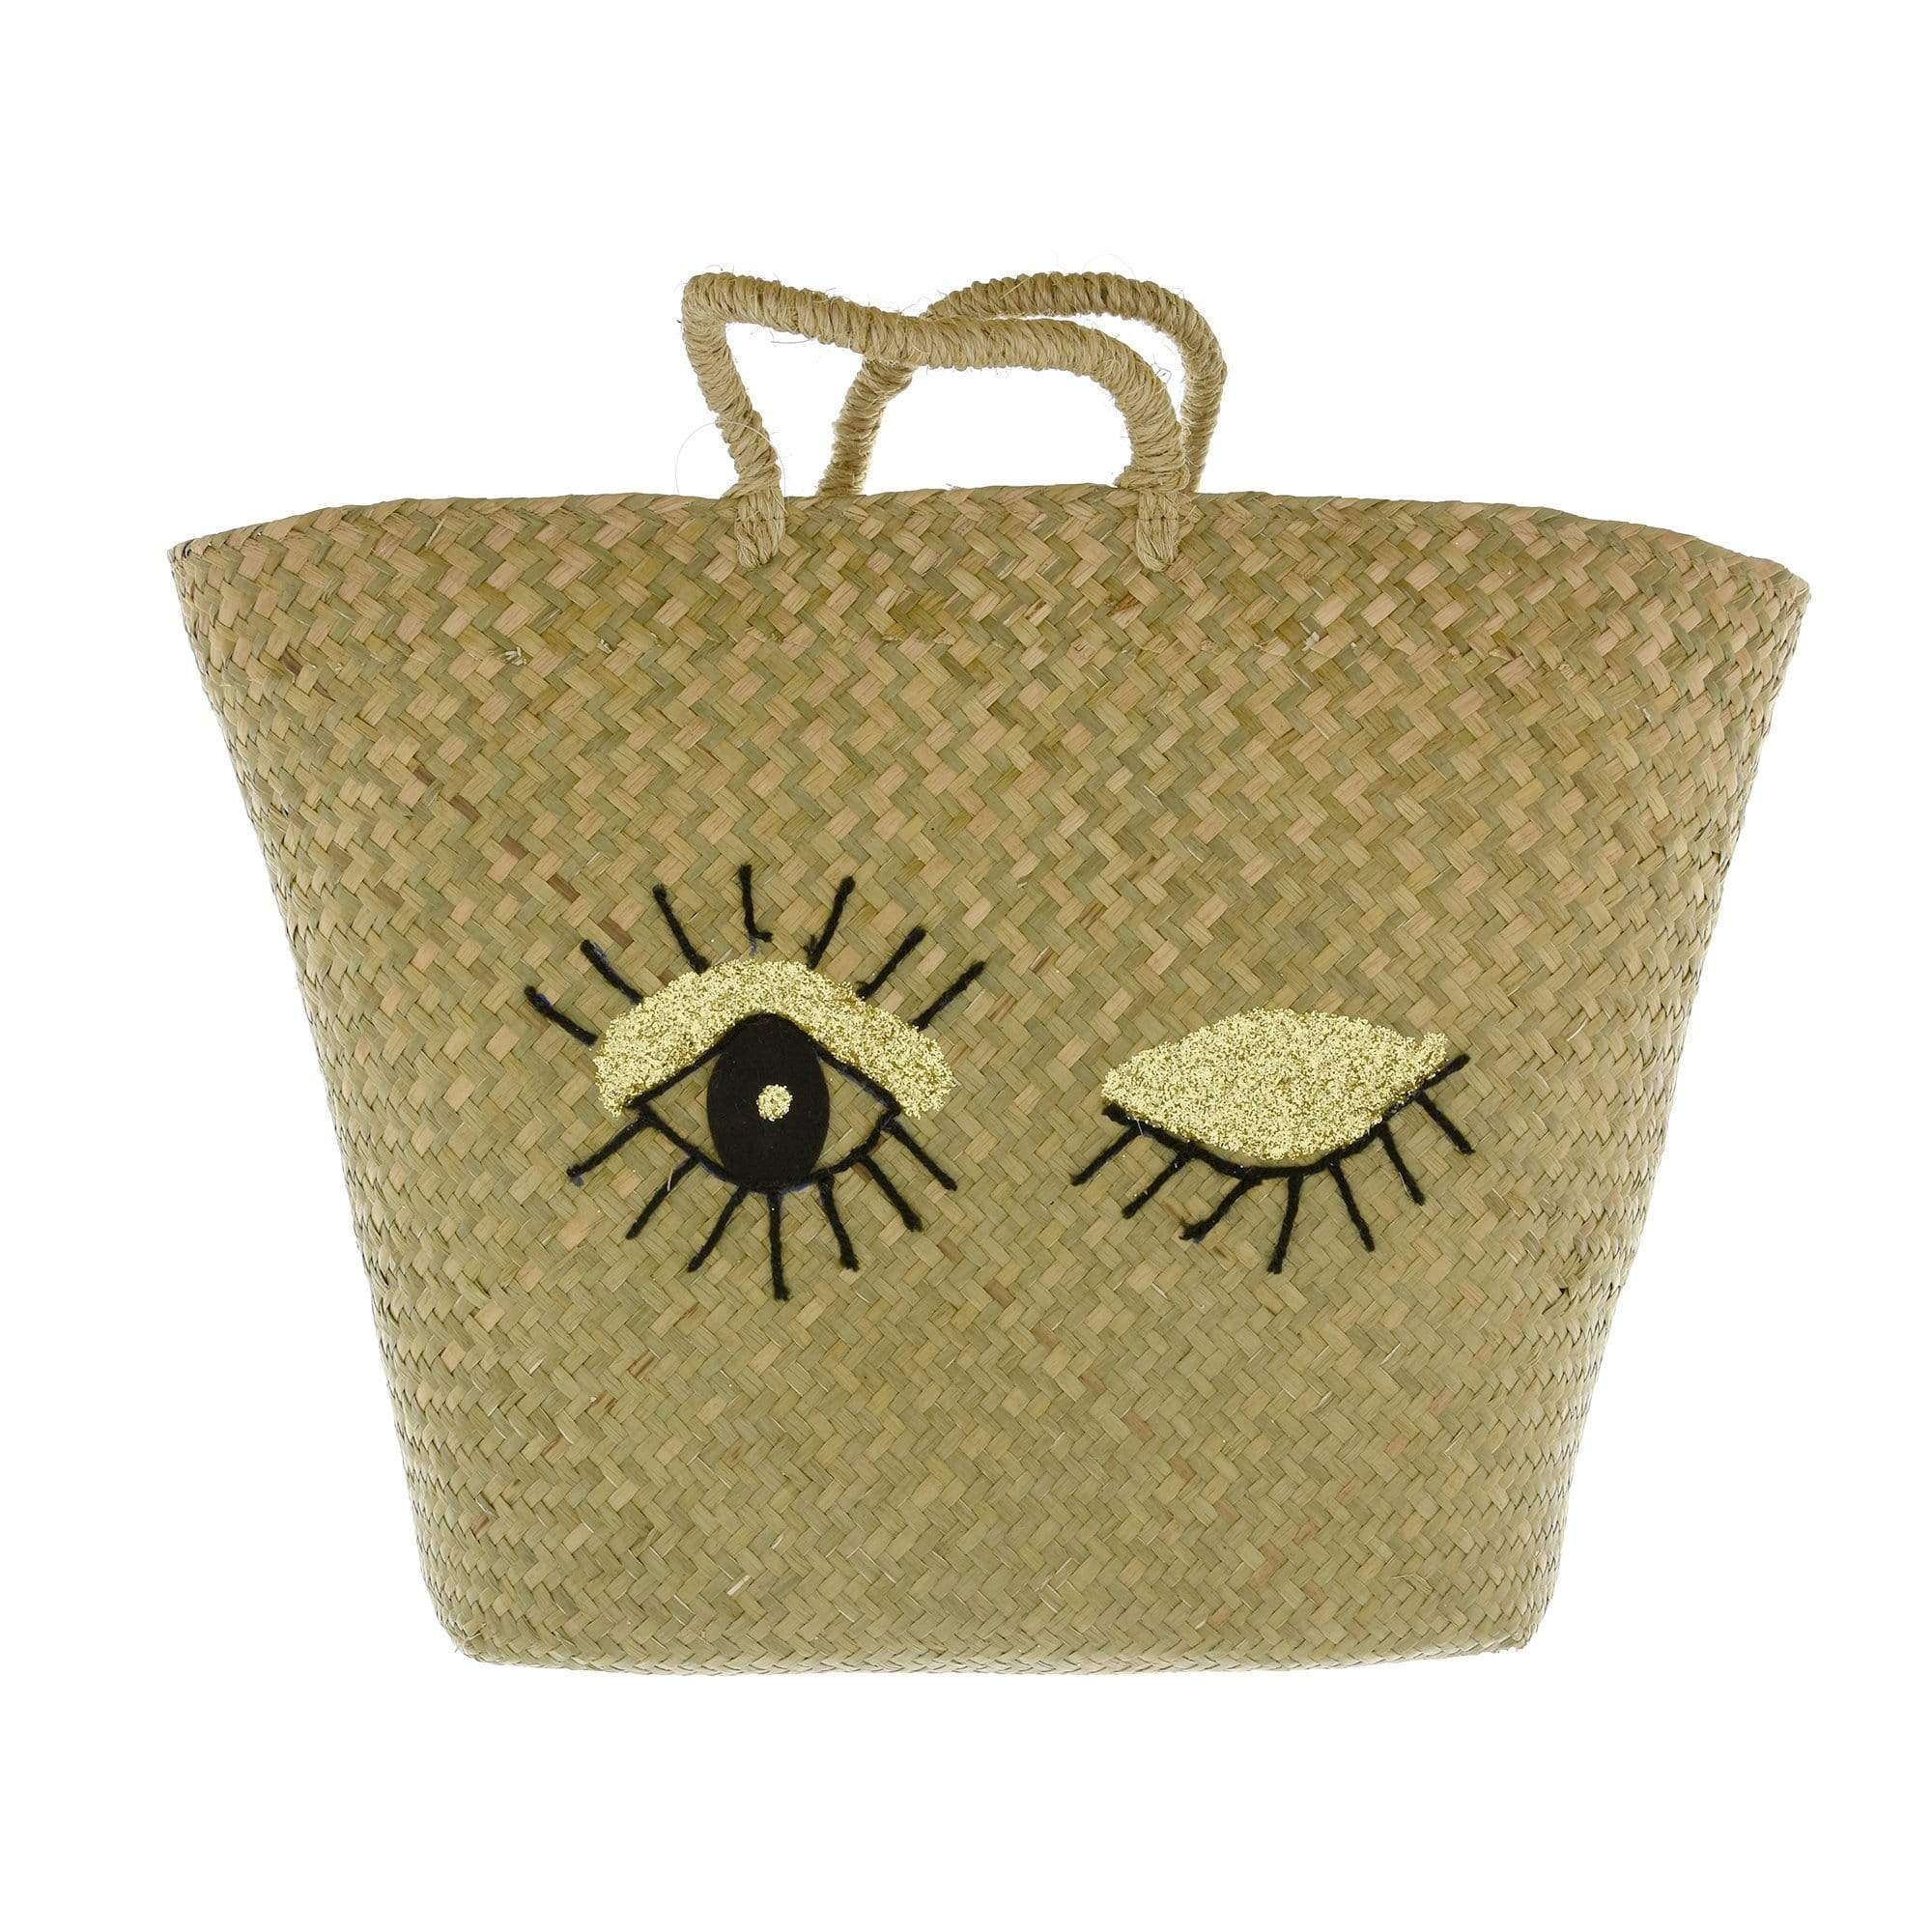 Eyelash Tote Bag Black and Gold 58cm 1PK